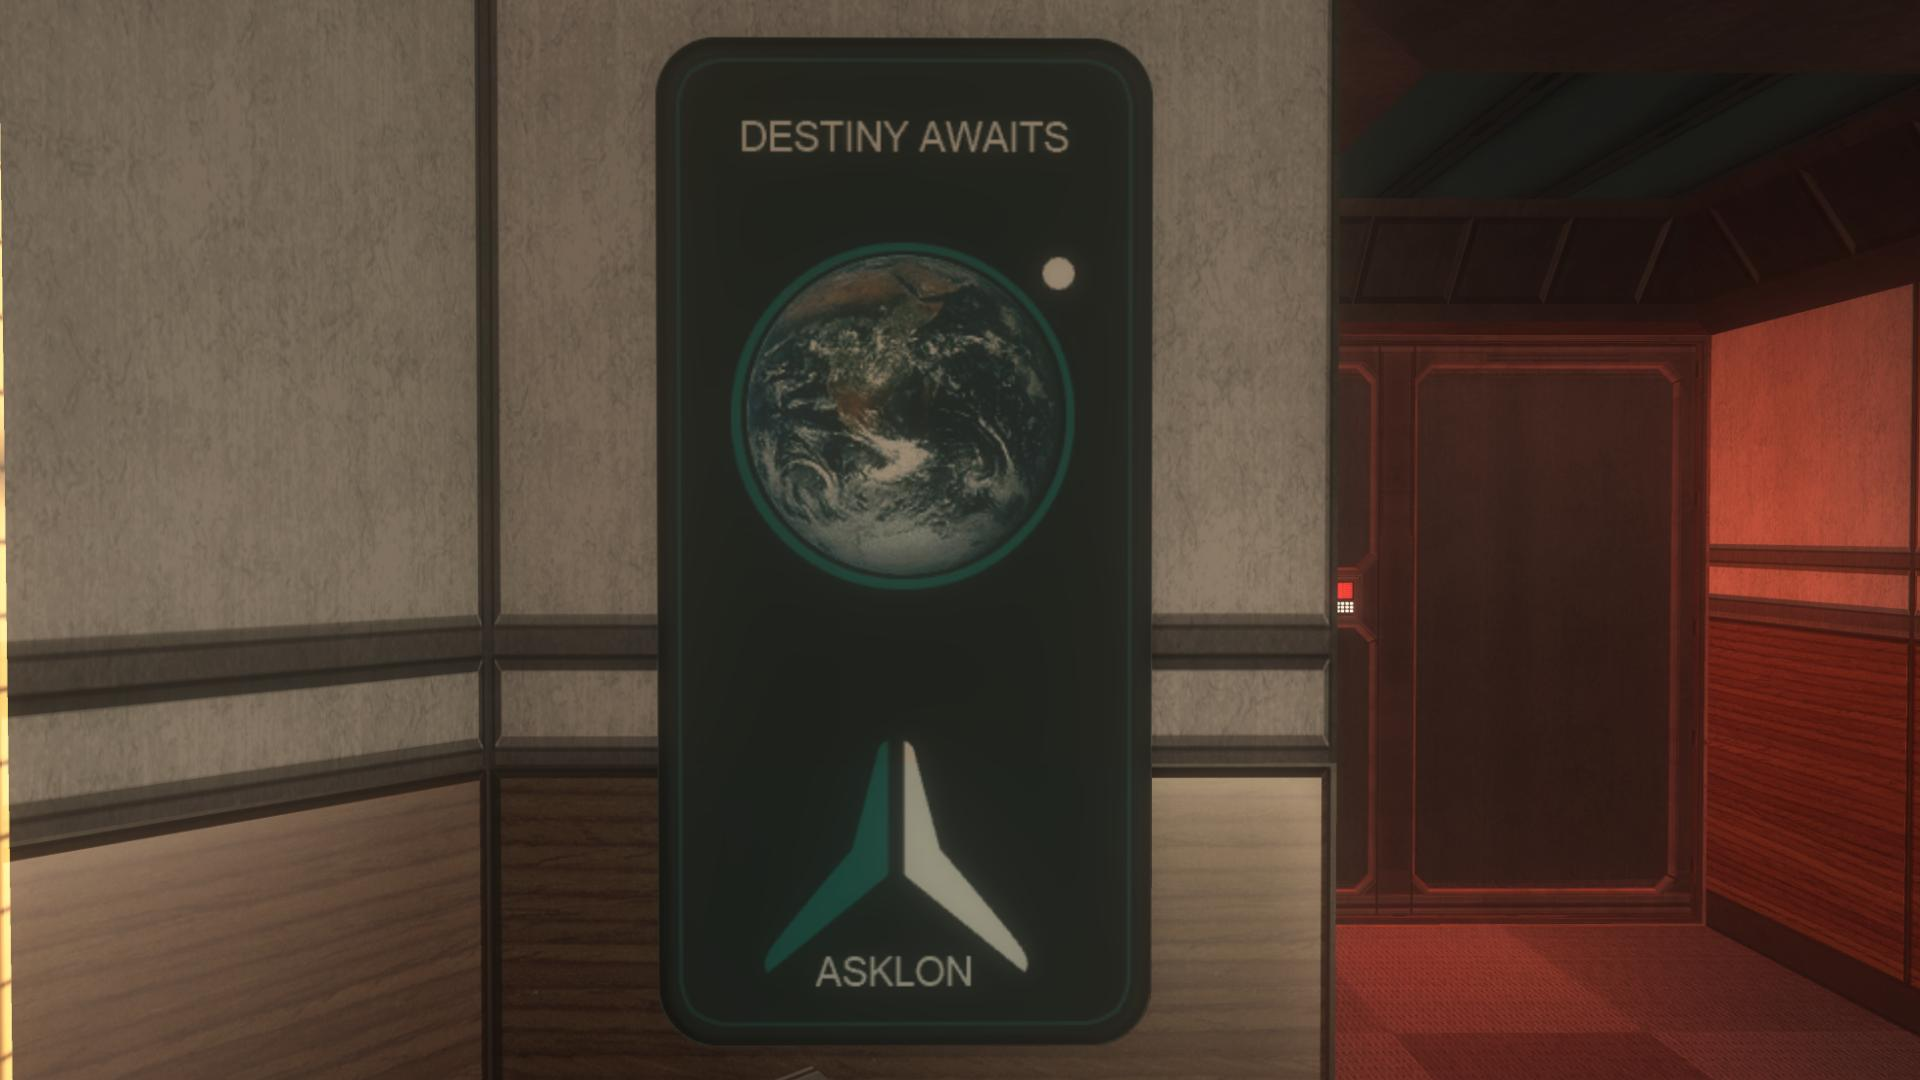 <em>Destiny</em> first appeared as an Easter egg in <em>Halo 3: ODST</em>.